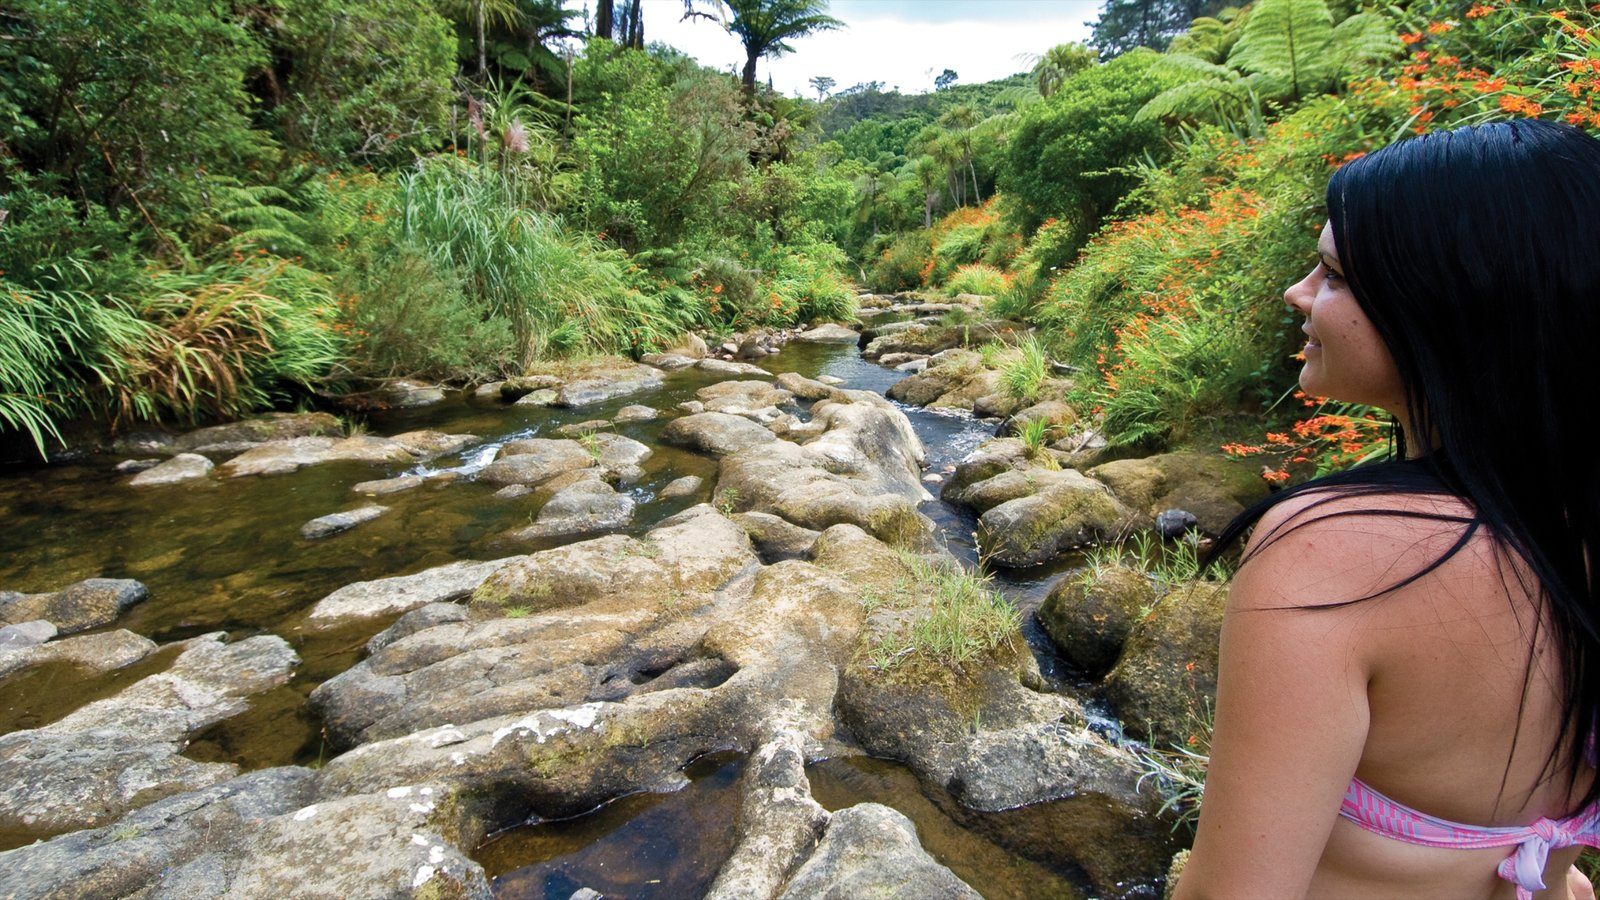 Coromandel showing wild flowers, forests and a river or creek